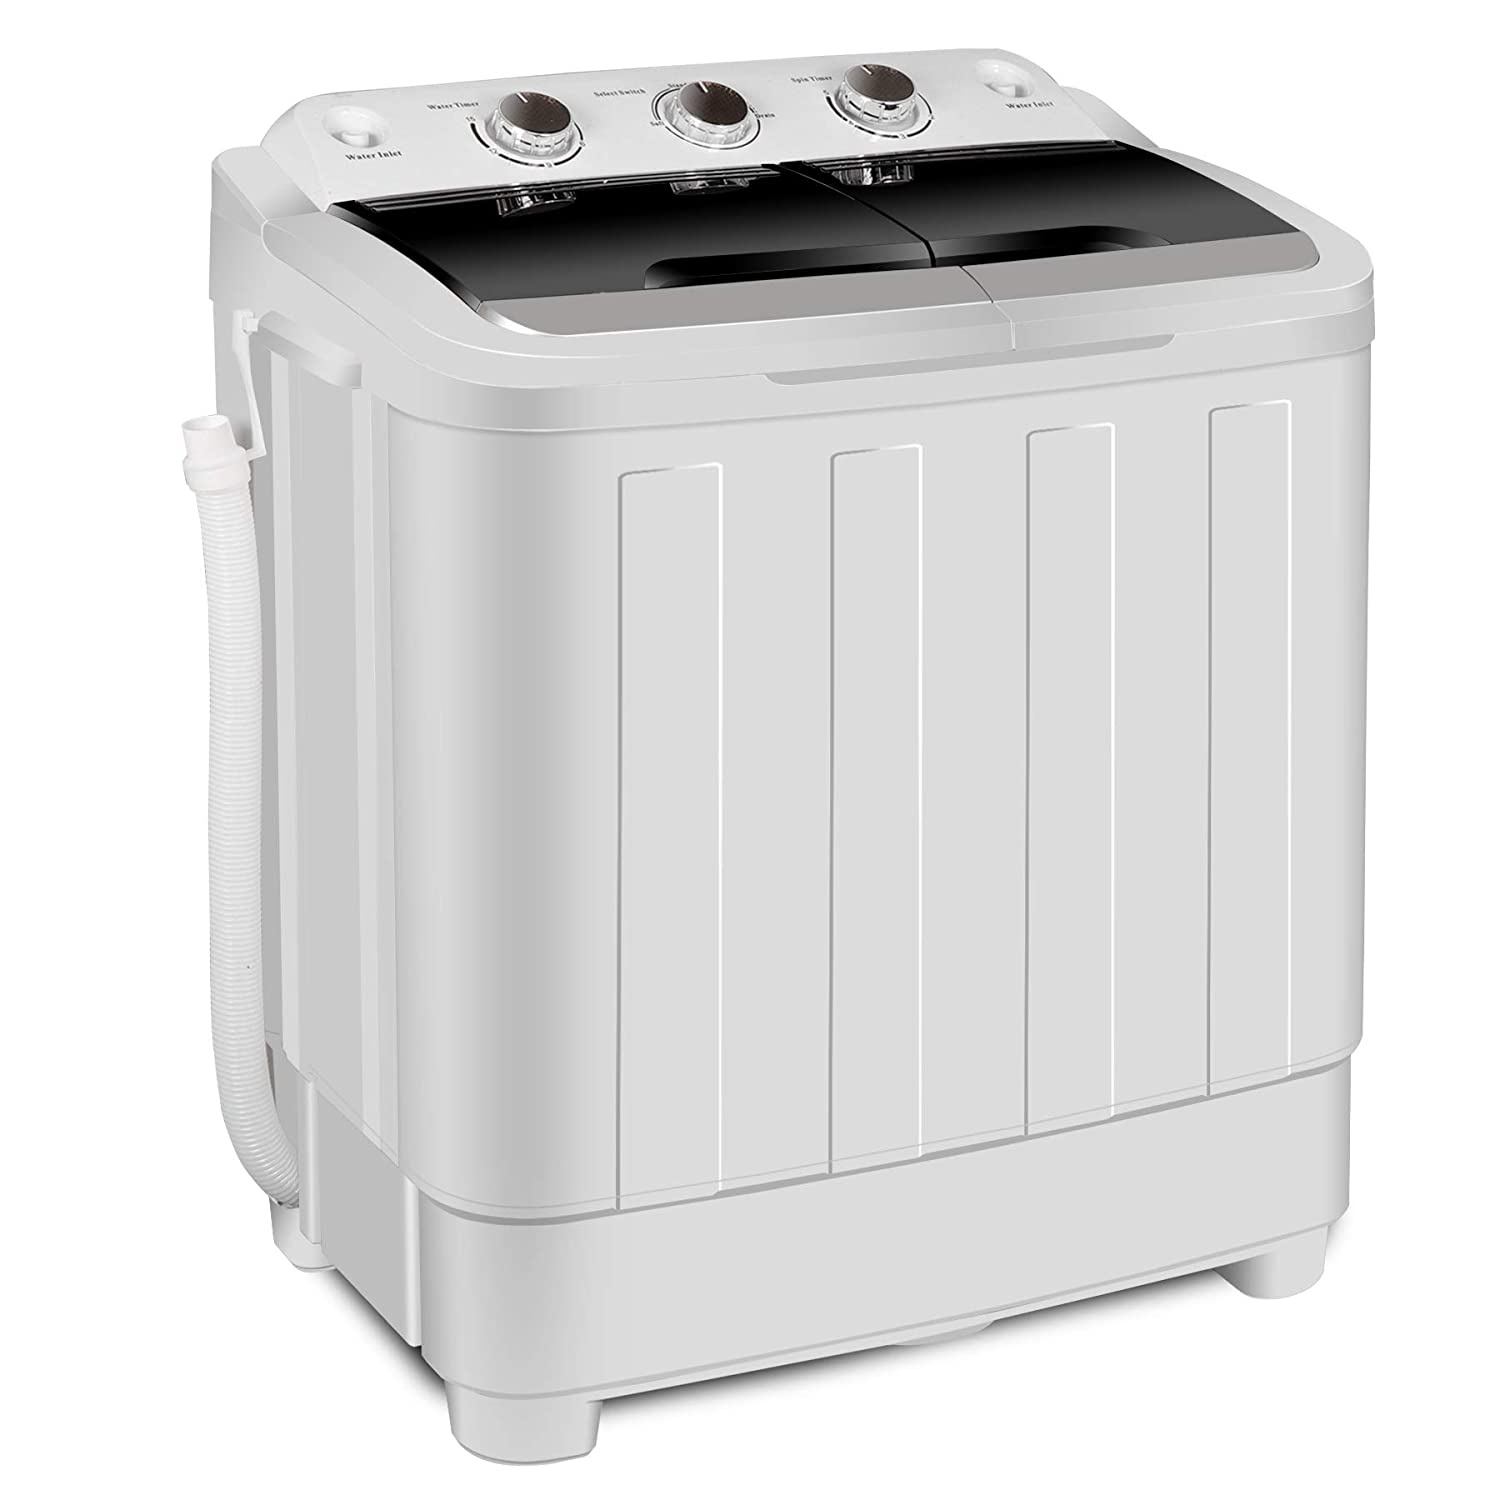 17.6lbs Portable Compact Washer Mini Twin Tub Washing Machine Electric Automatic Load Laundry includes Spin Cycle Dryer and Gravity Drain Pump, Hose for Apartments, Dorm Rooms, RV' s, White and Black JupiterForce